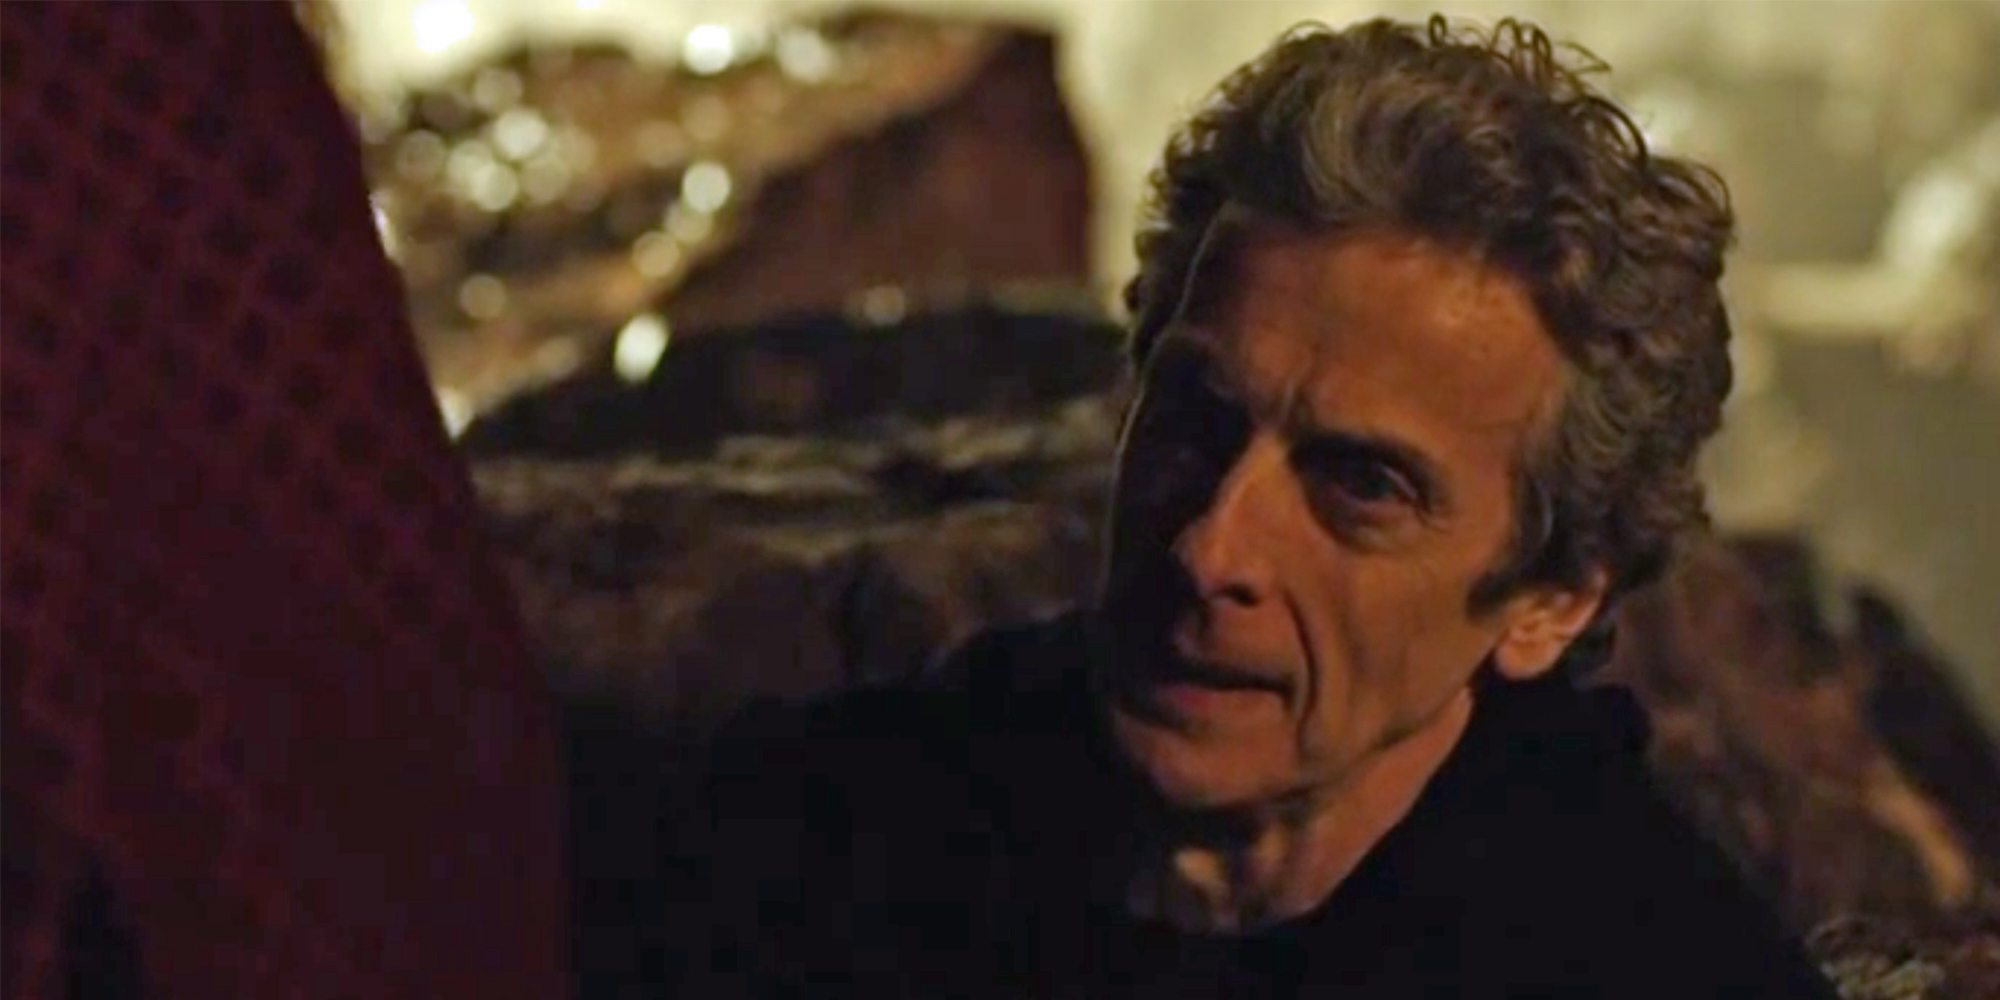 'Doctor Who' Season 9 Prologue Is Here!